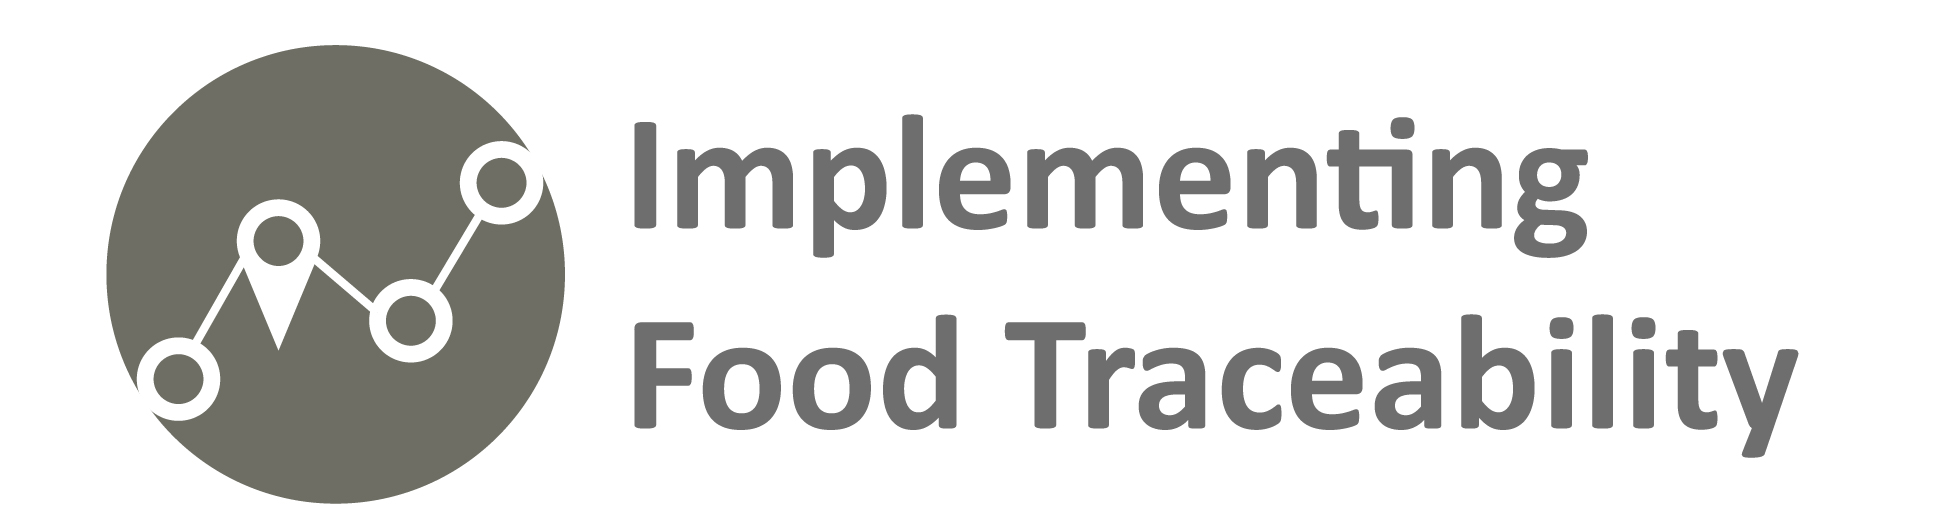 Implementing Food Traceability Program